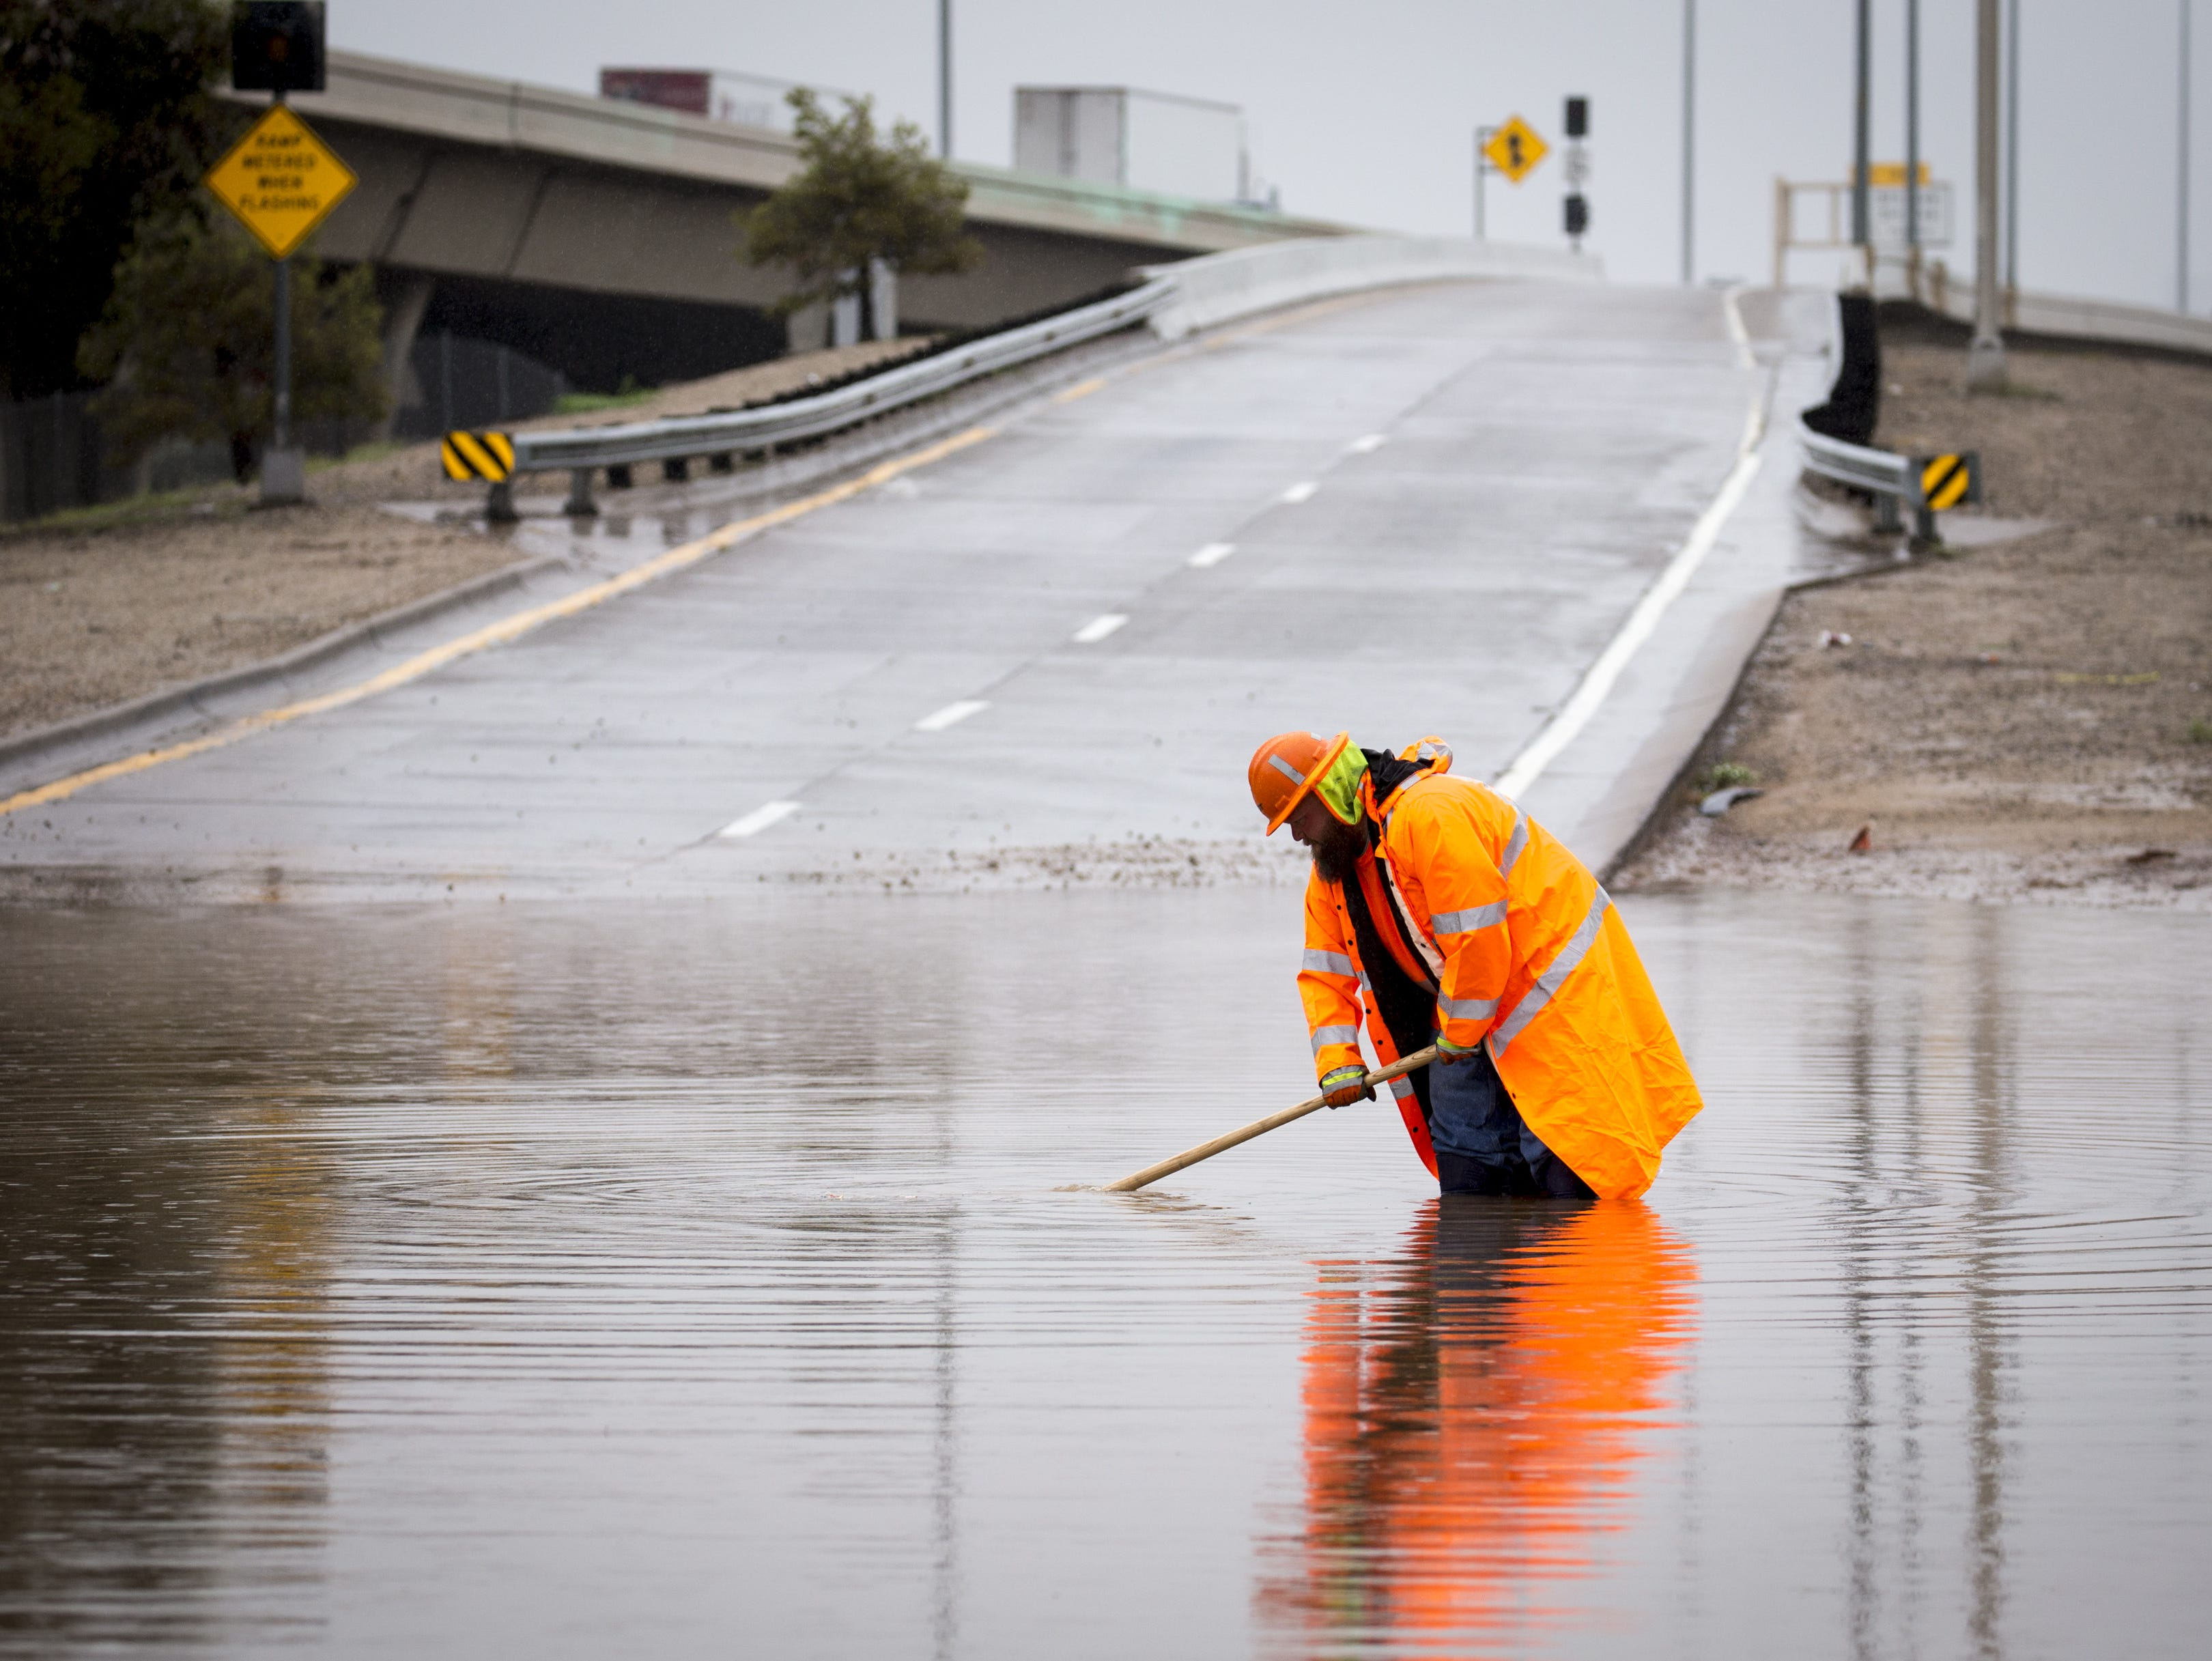 Mike Culp from the Arizona Department of Transportation clears a drain on the closed I-10 on-ramp at 19th Avenue, Oct. 2, 2018, in Phoenix.